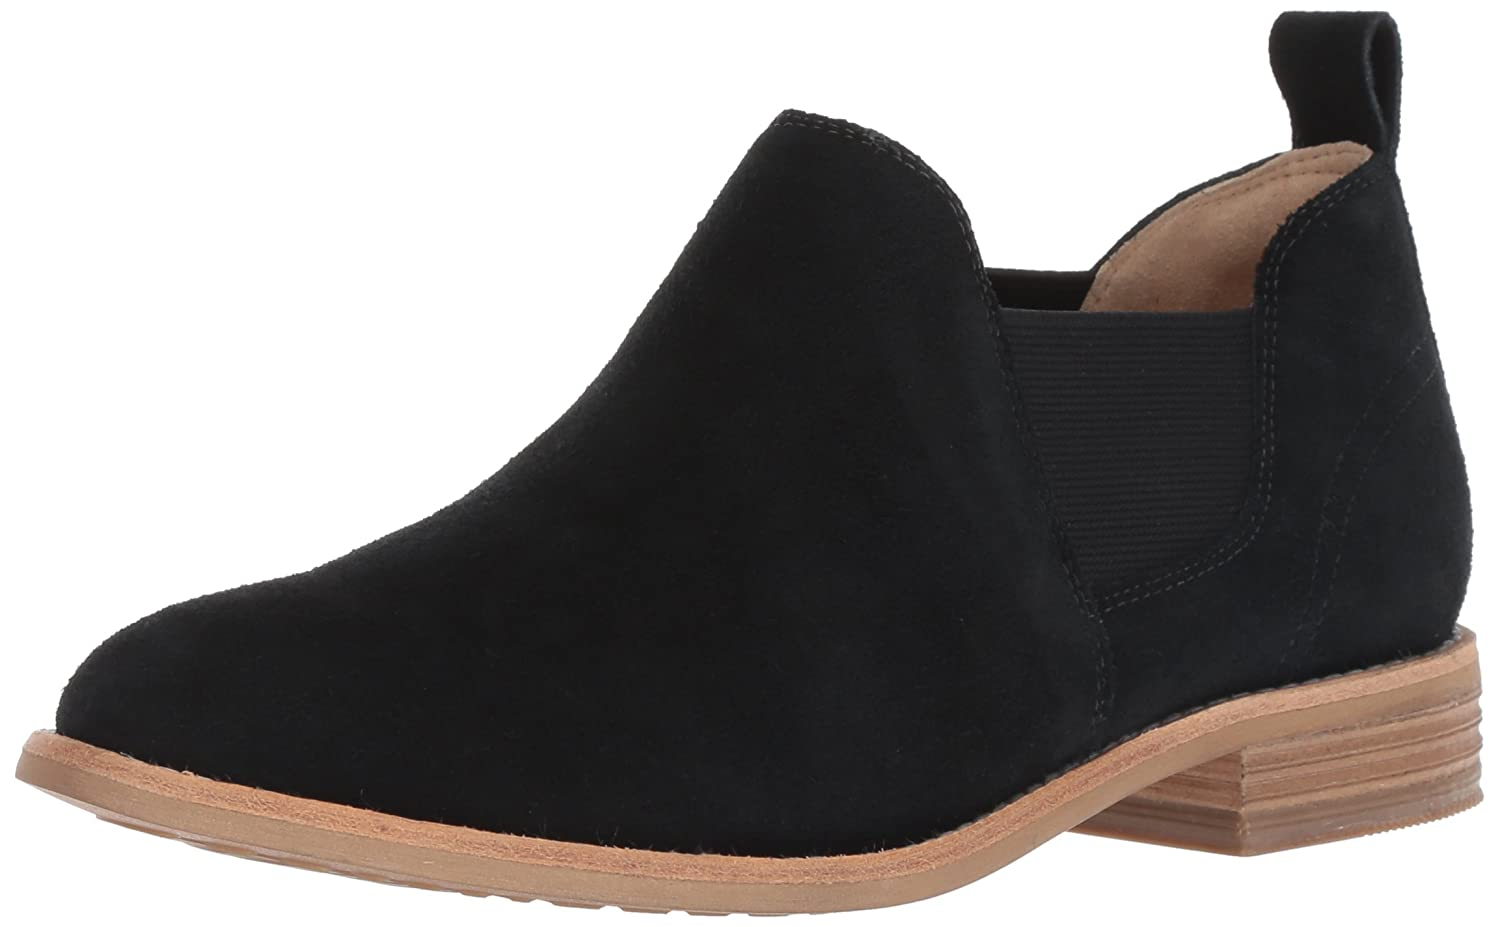 Black Suede Clarks Womens Edenvale Page Fashion Boot